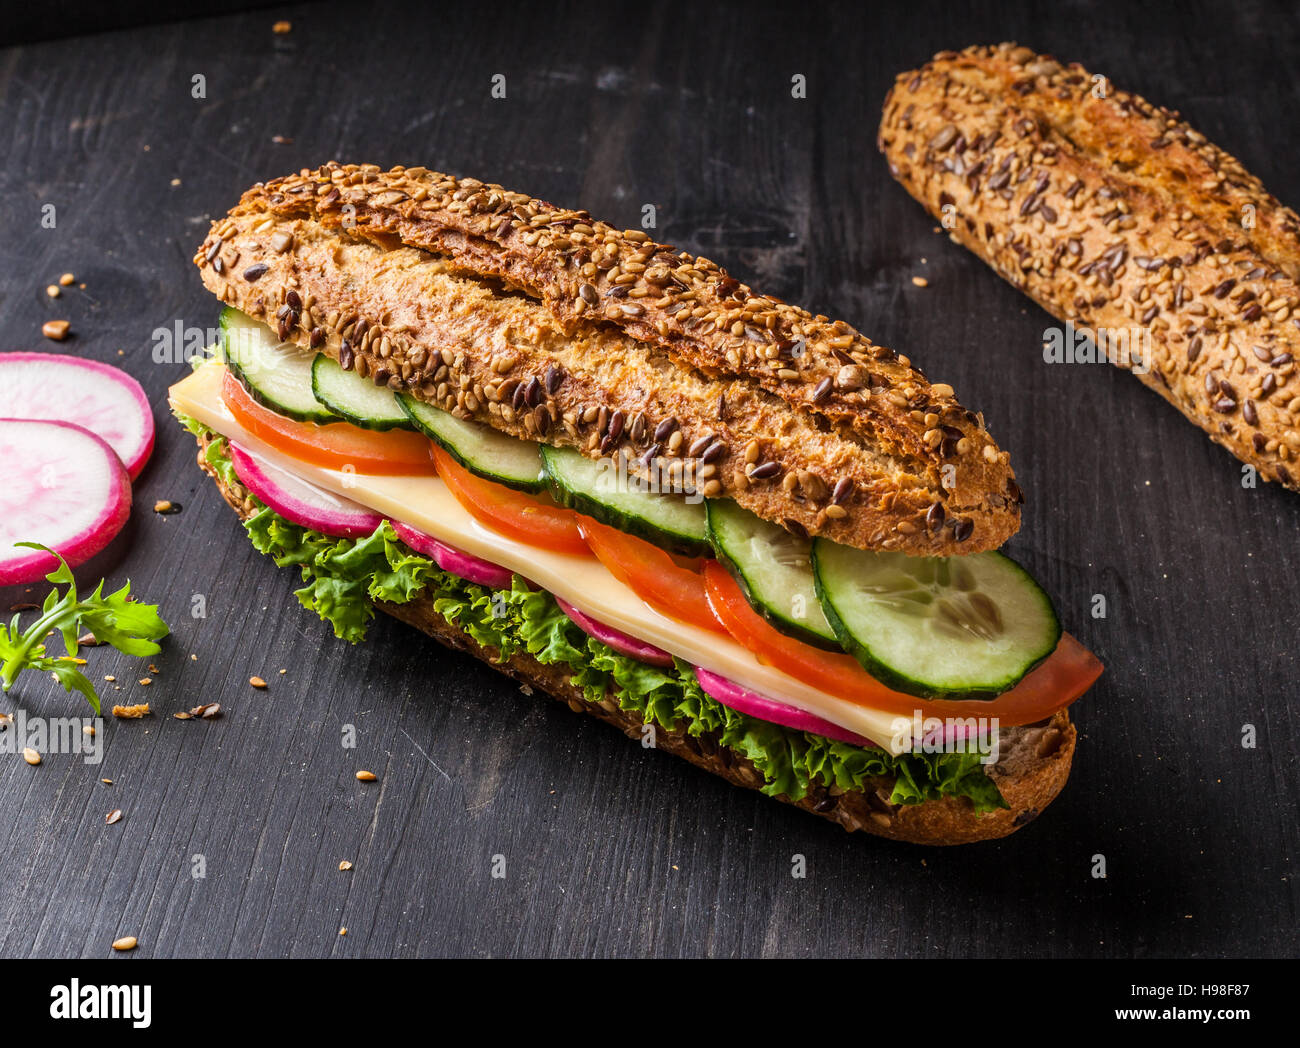 Sandwich with cheese, tomato, cucumber, radish and lettuce. Dark and moody. - Stock Image